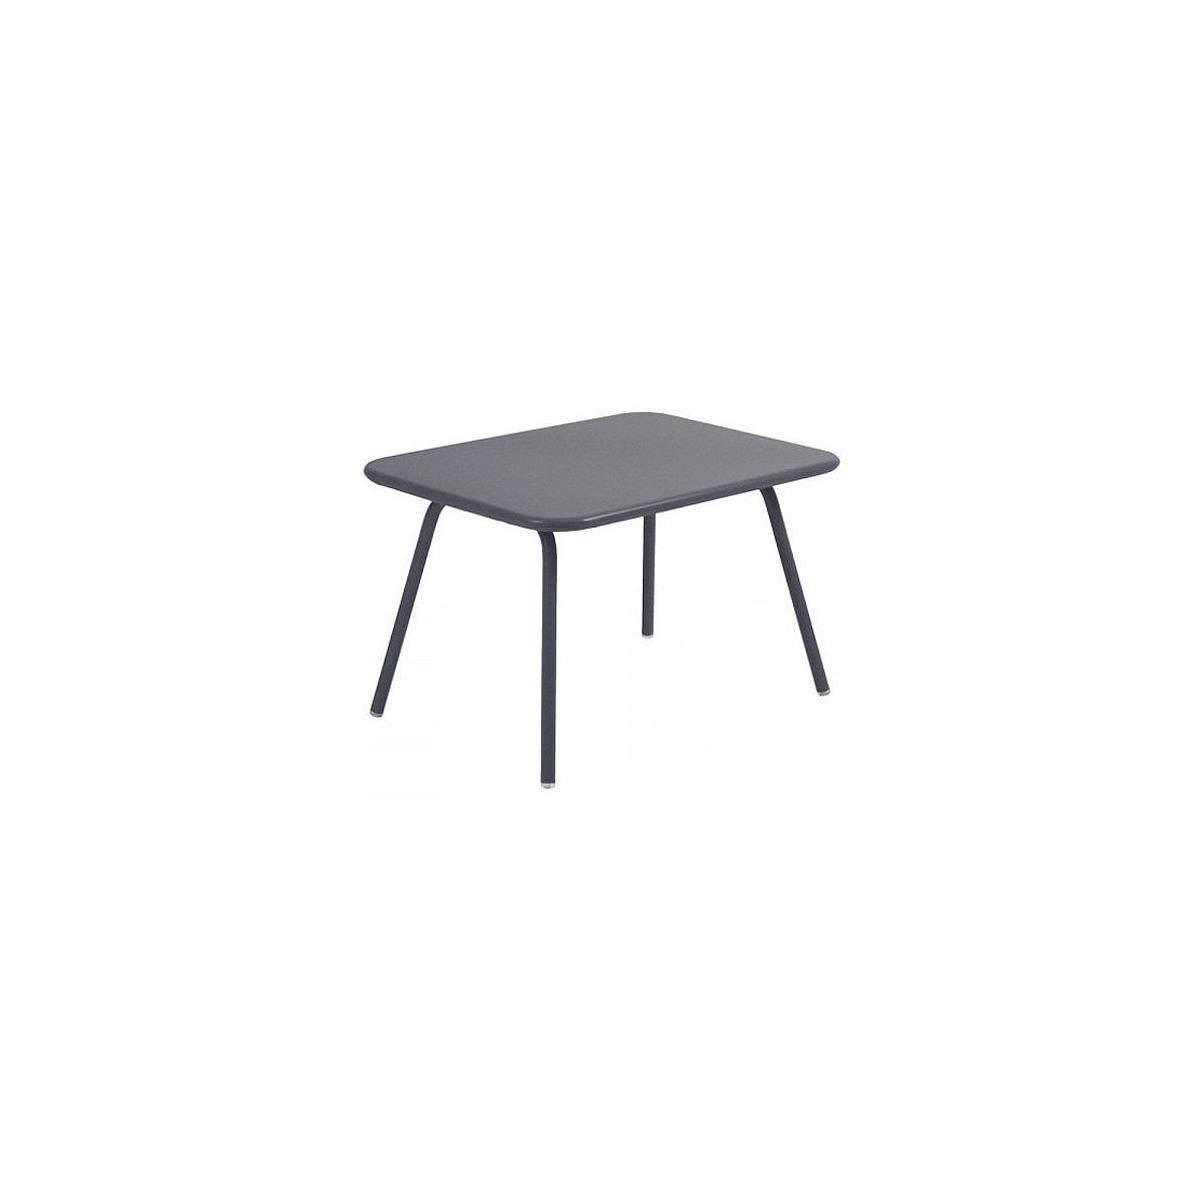 LUXEMBOURG KID by Fermob Table gris orage